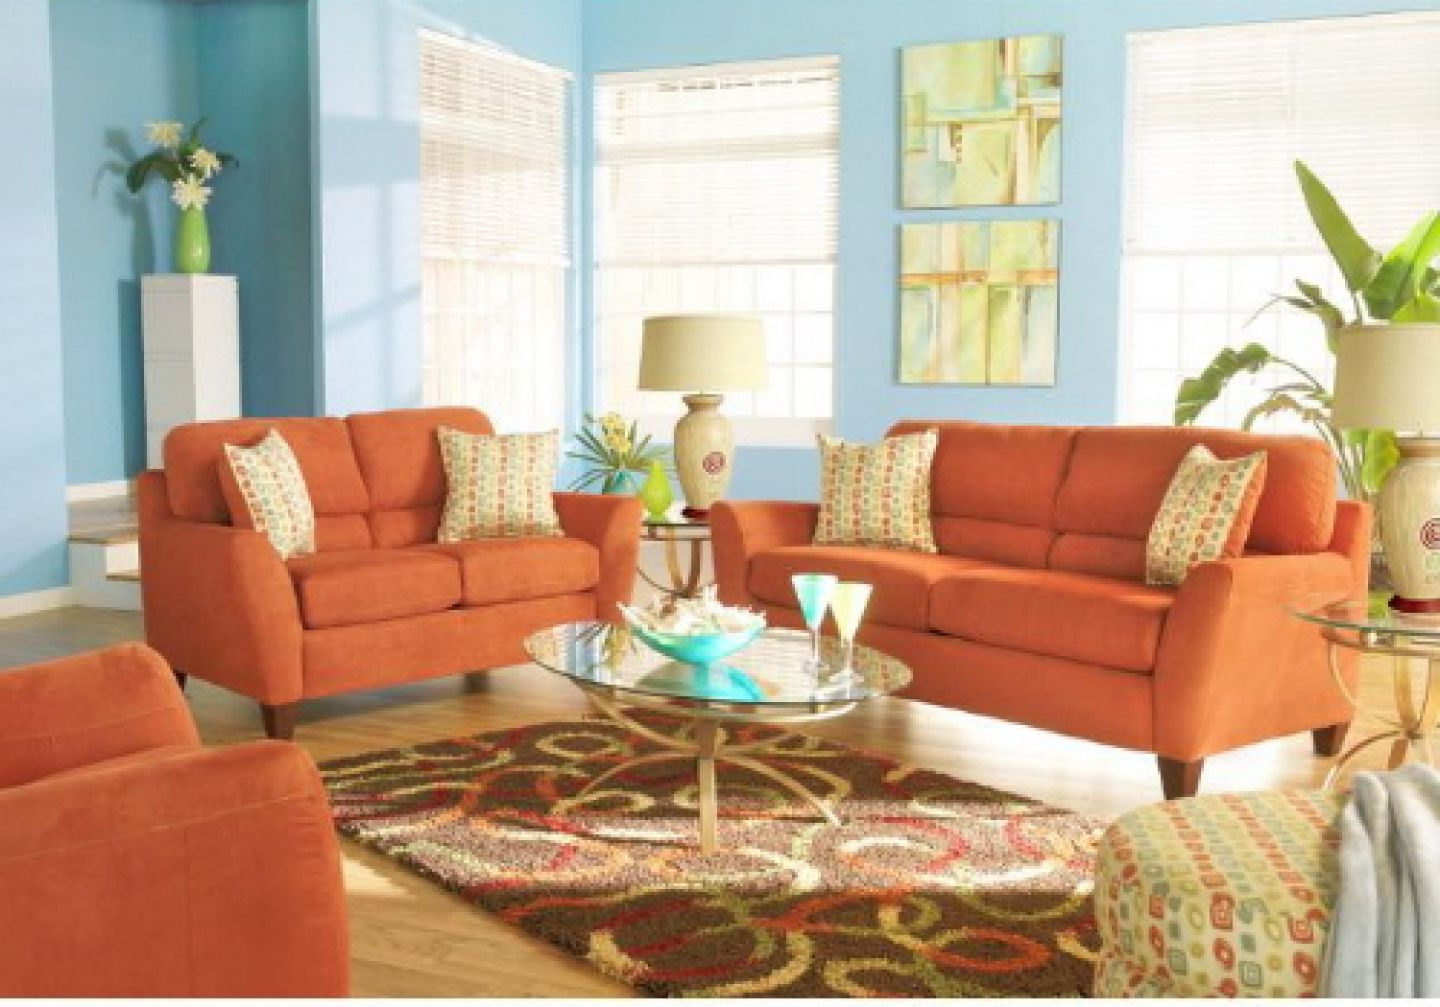 Fancy Orange Couch Living Room New Burnt Furniture Nice Decoration Within with Burnt Orange Living Room